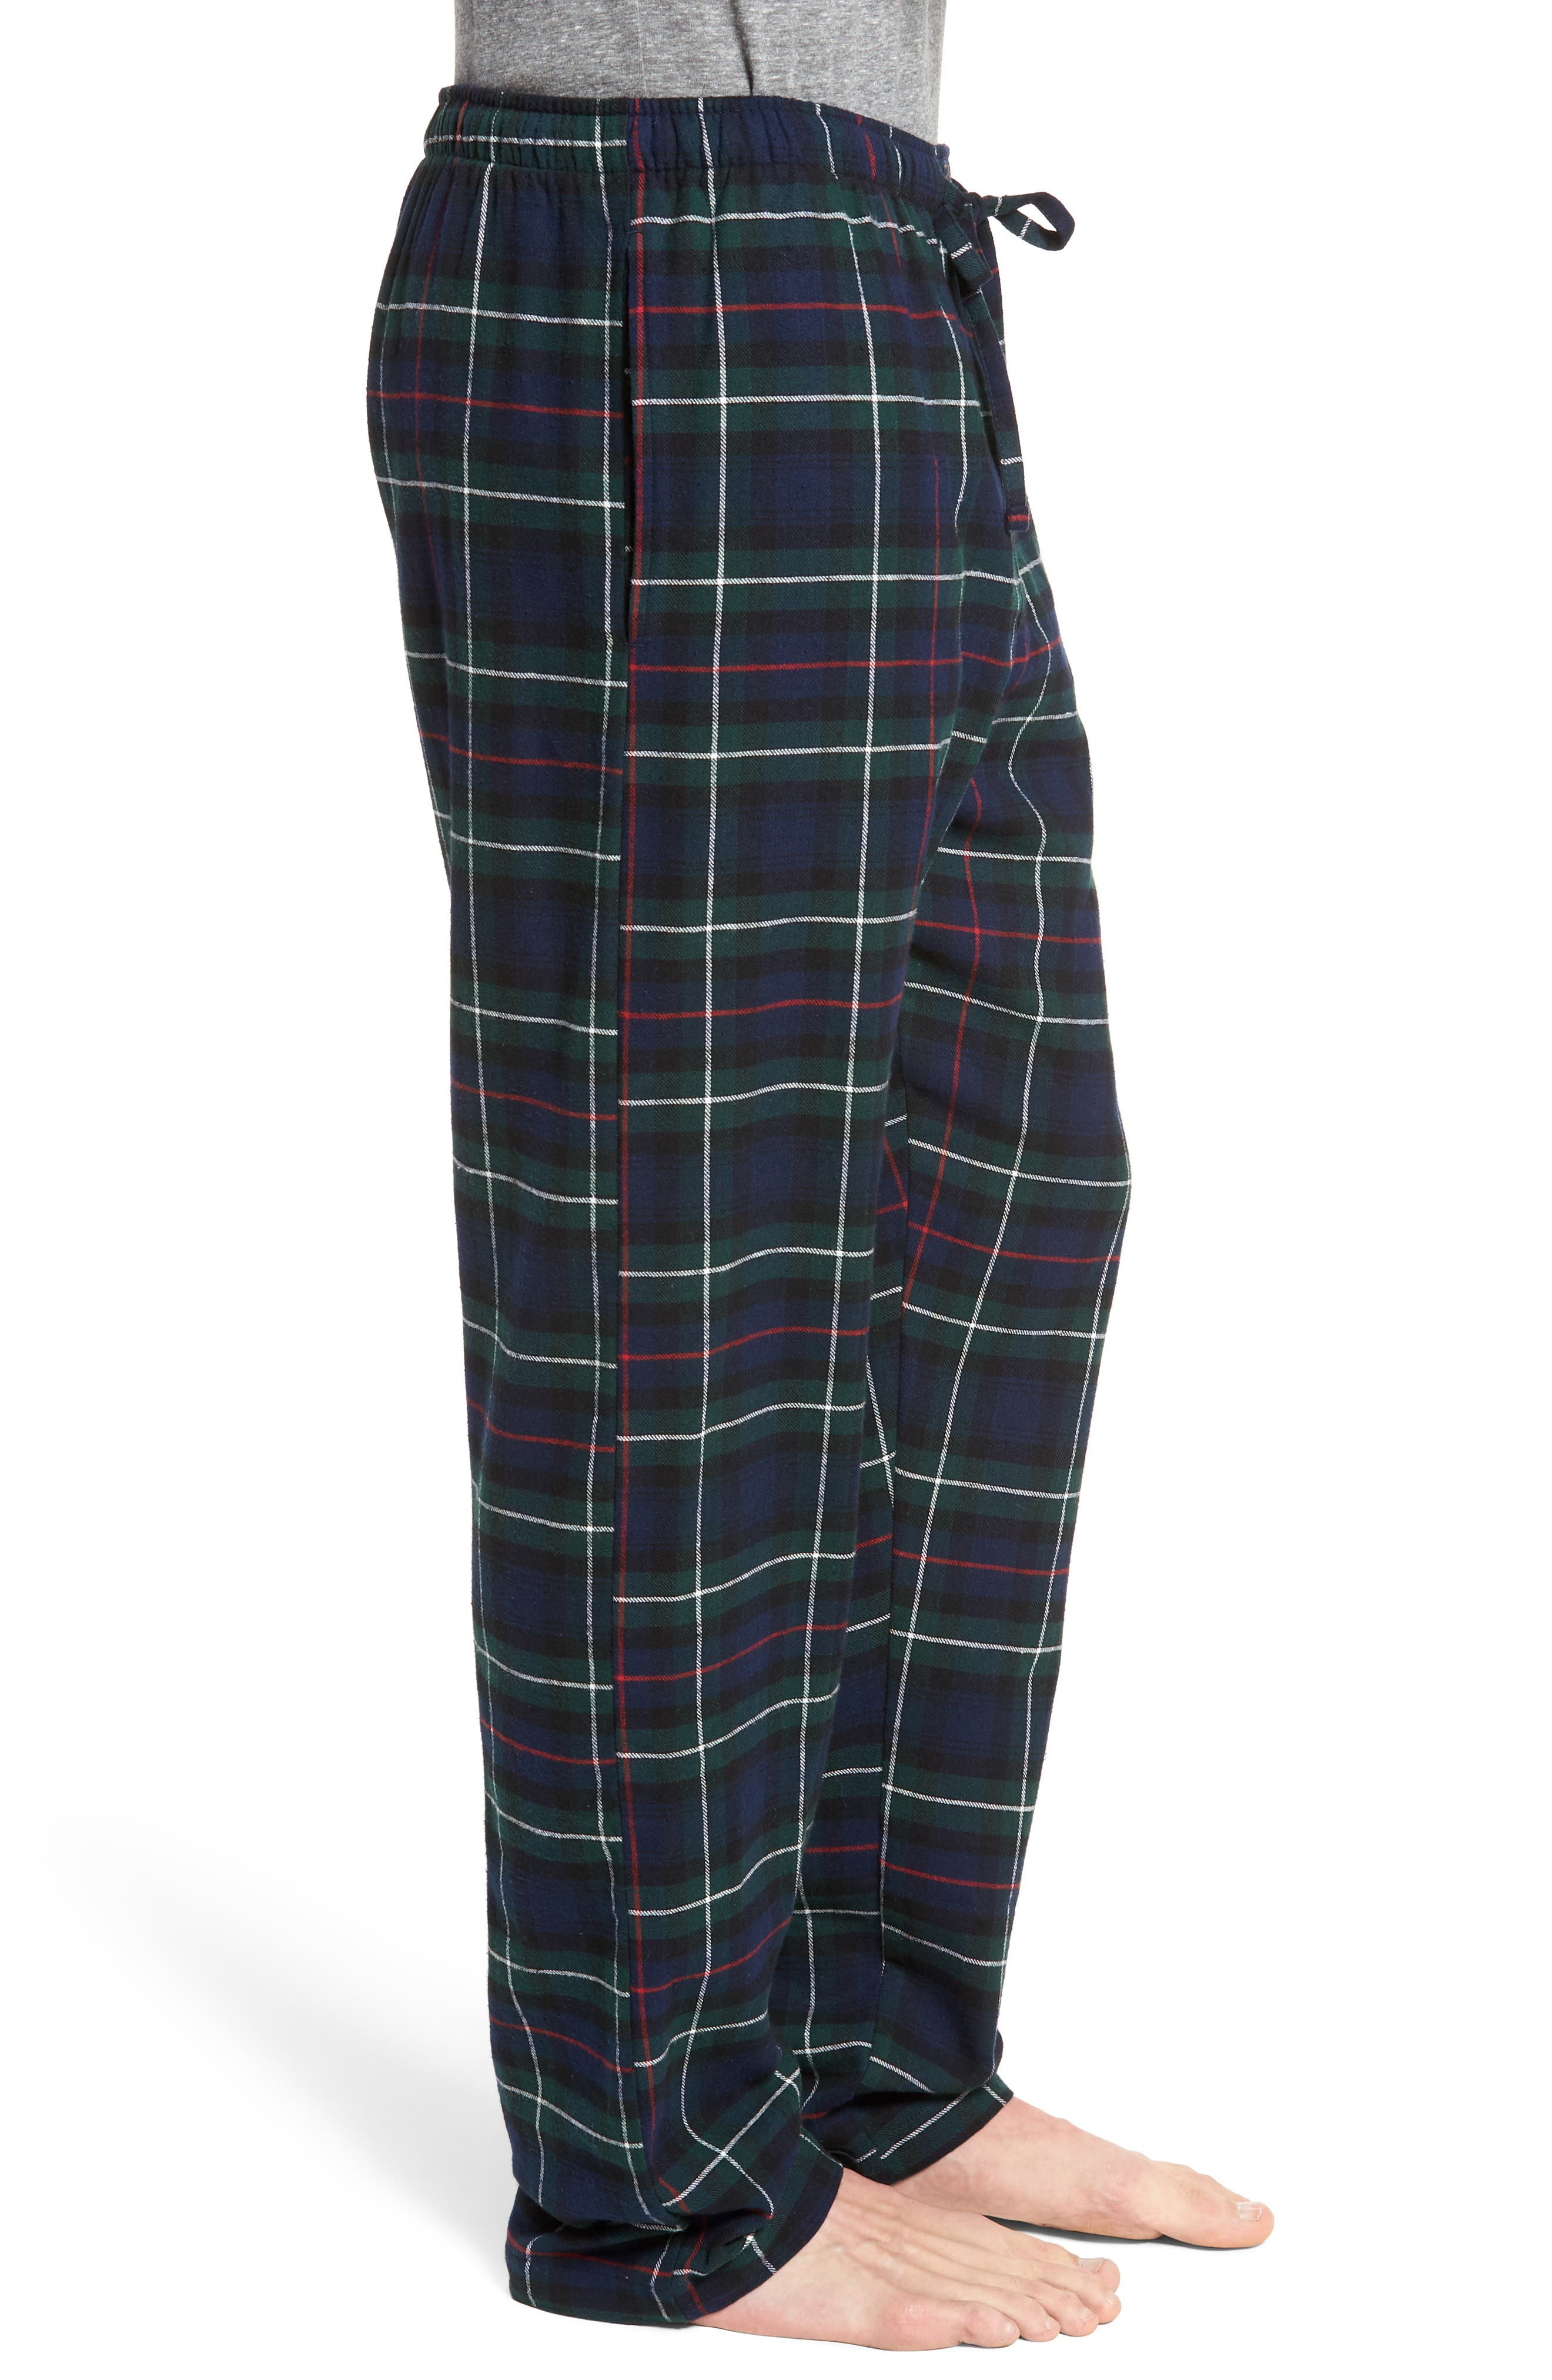 Flannel Pajama Pants,                             Alternate thumbnail 3, color,                             Blackwatch/ Cruise Navy/ Gold